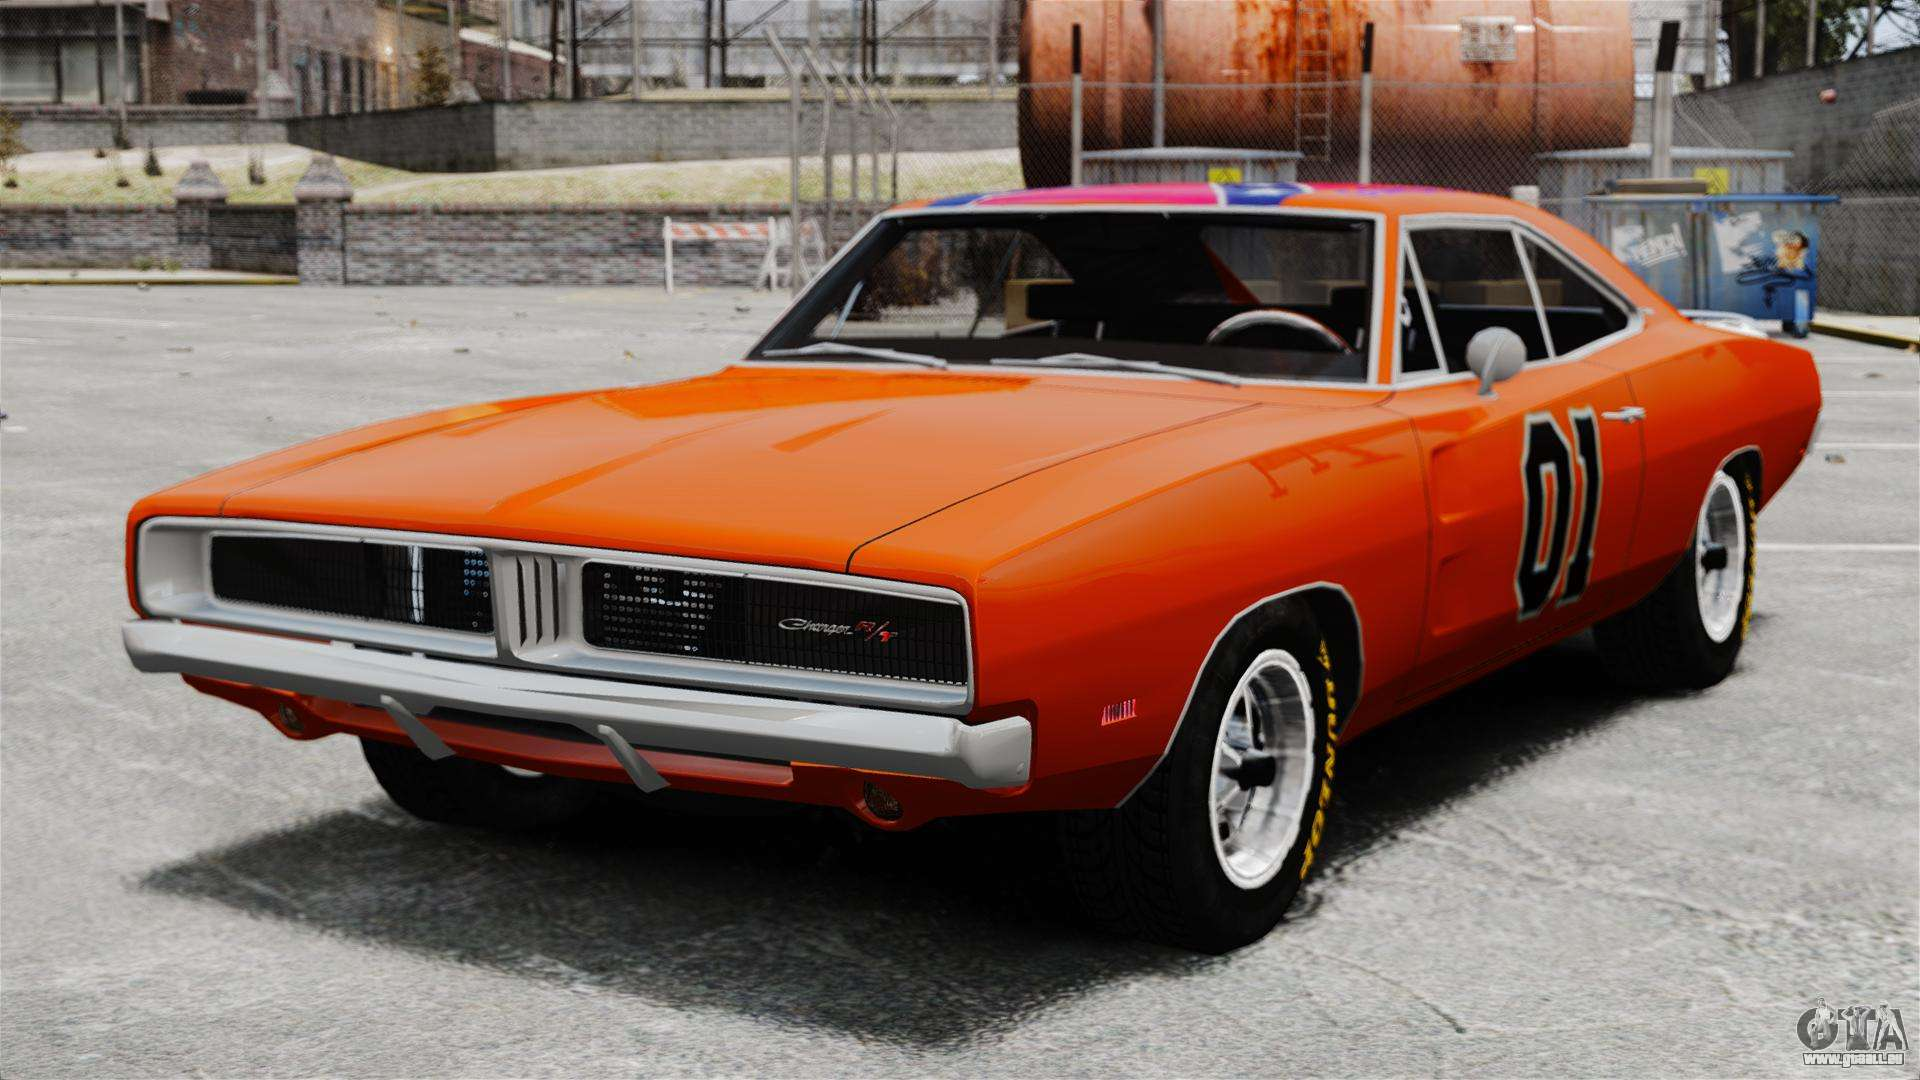 Gta V Best Muscle Car For Drag Racing